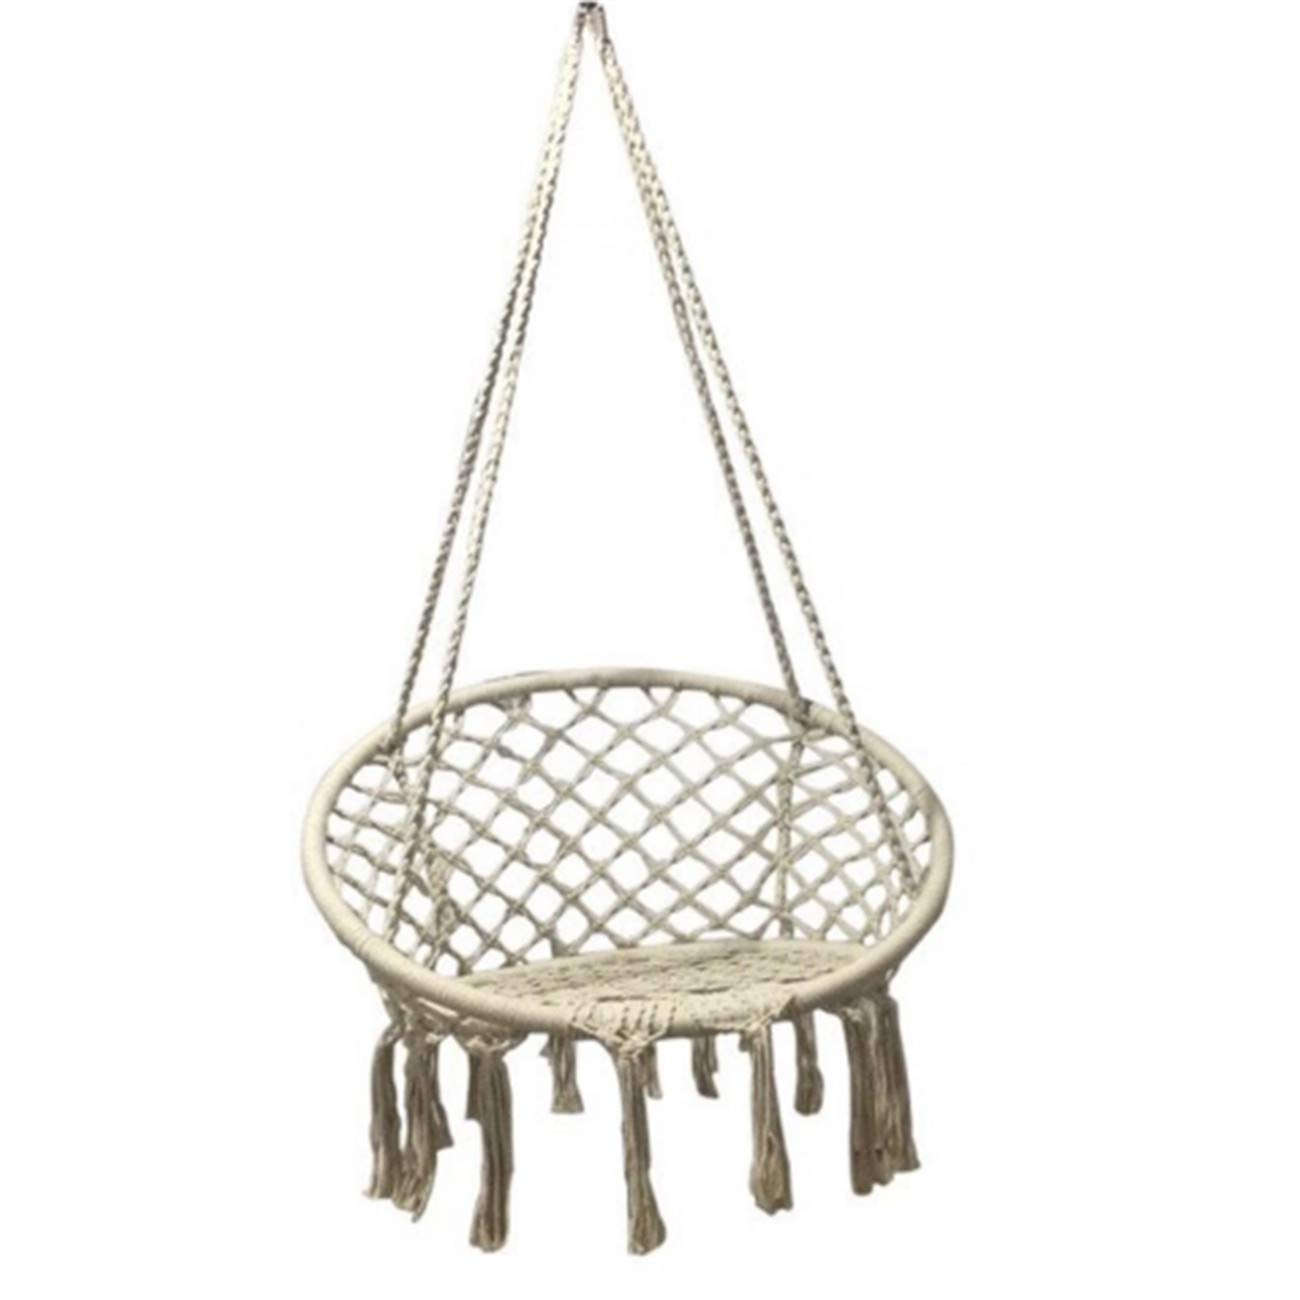 Tywk Swing Hanging Chair Handmade Cotton Rope Made of Hammock Chair Hollow Tassel Hanging Basket Swing for Living Room Balcony and Other Scenes, White, Bearing 200kg by Tywk